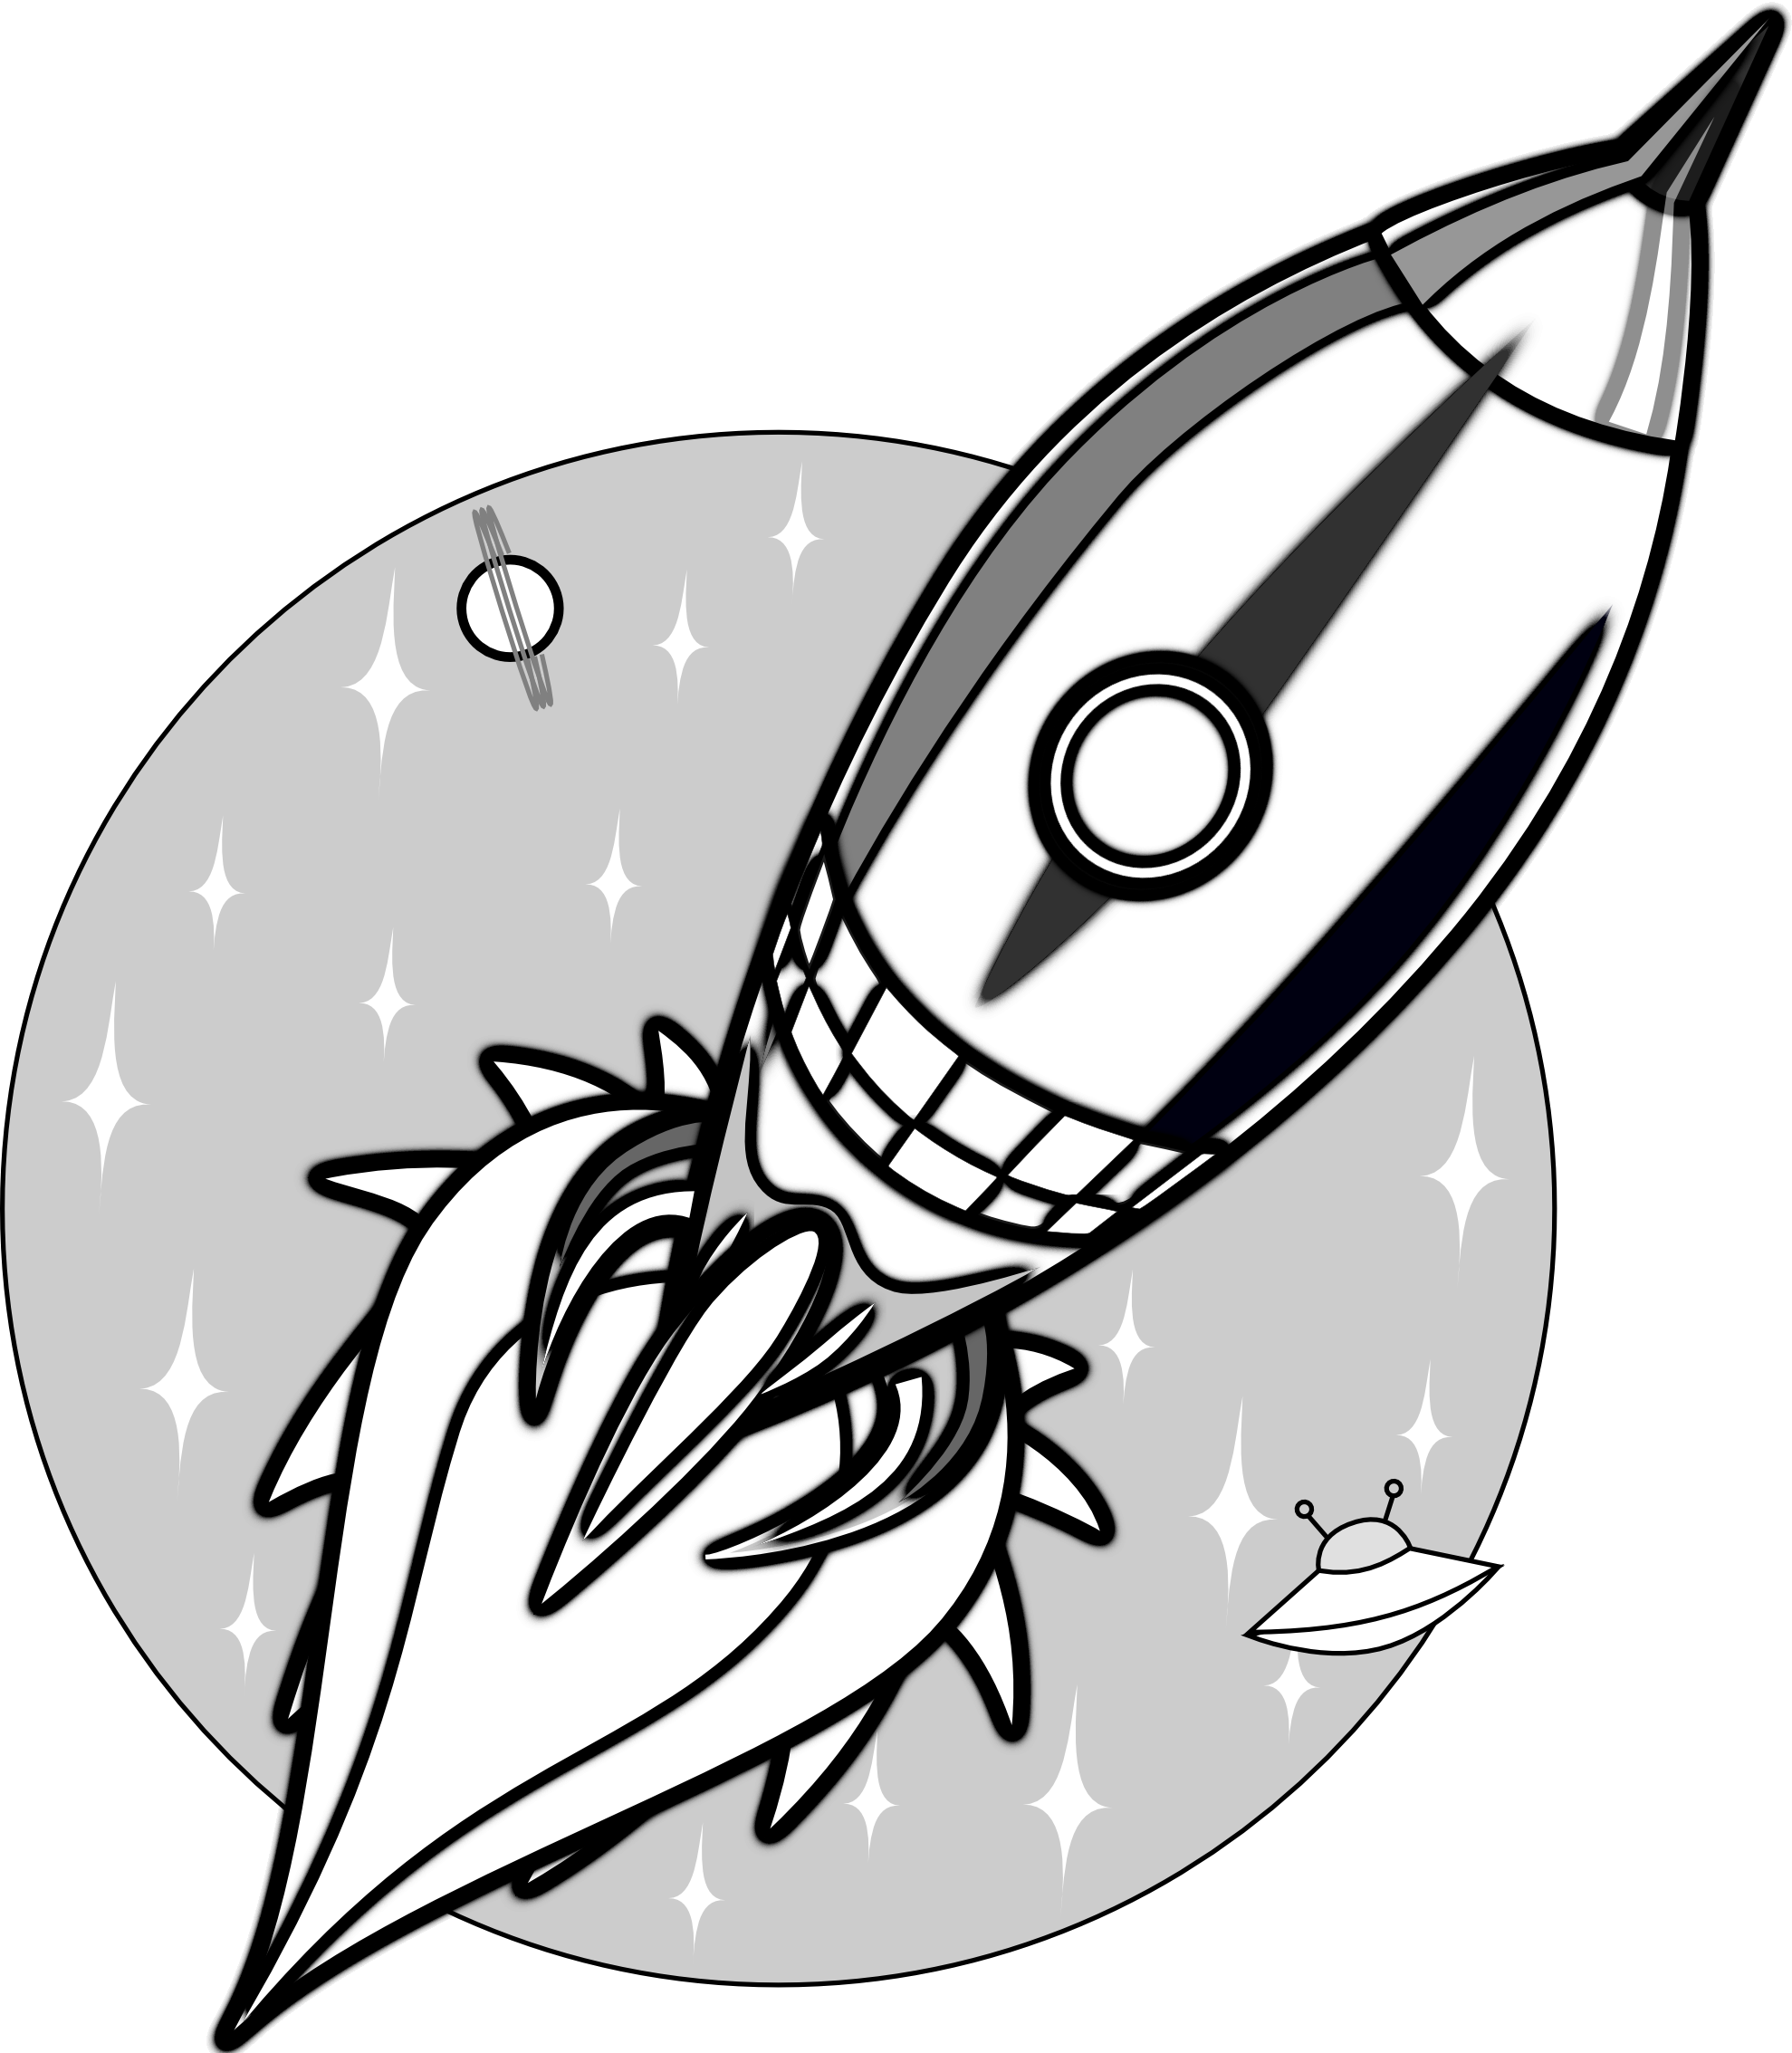 Rocketship clipart cool rocket. Ship black and white